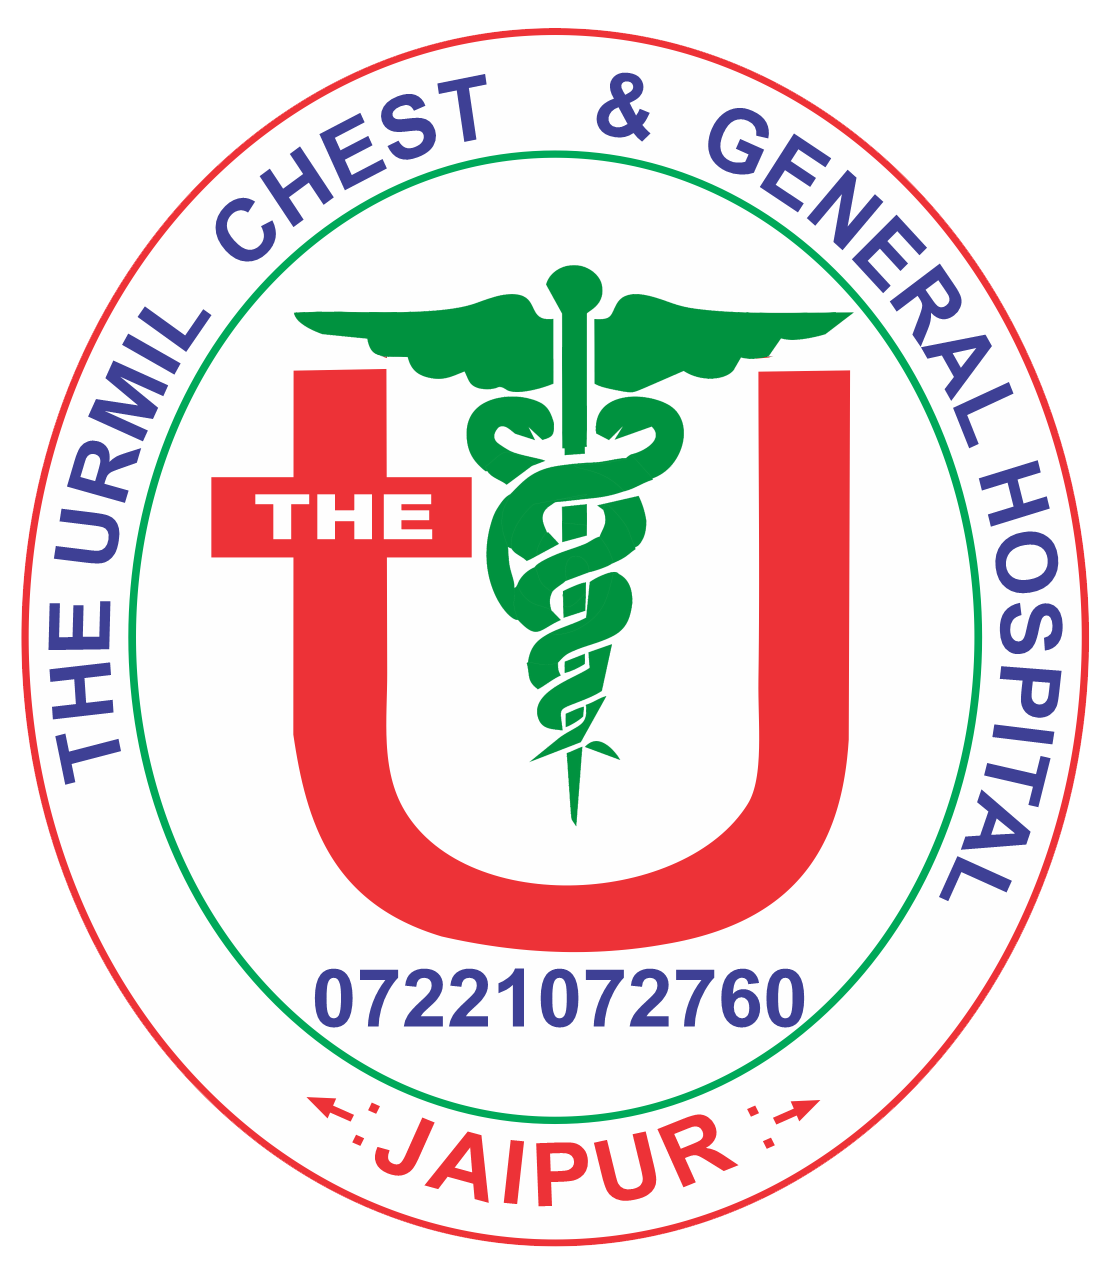 THE URMIL CHEST AND GENERAL HOSPITAL